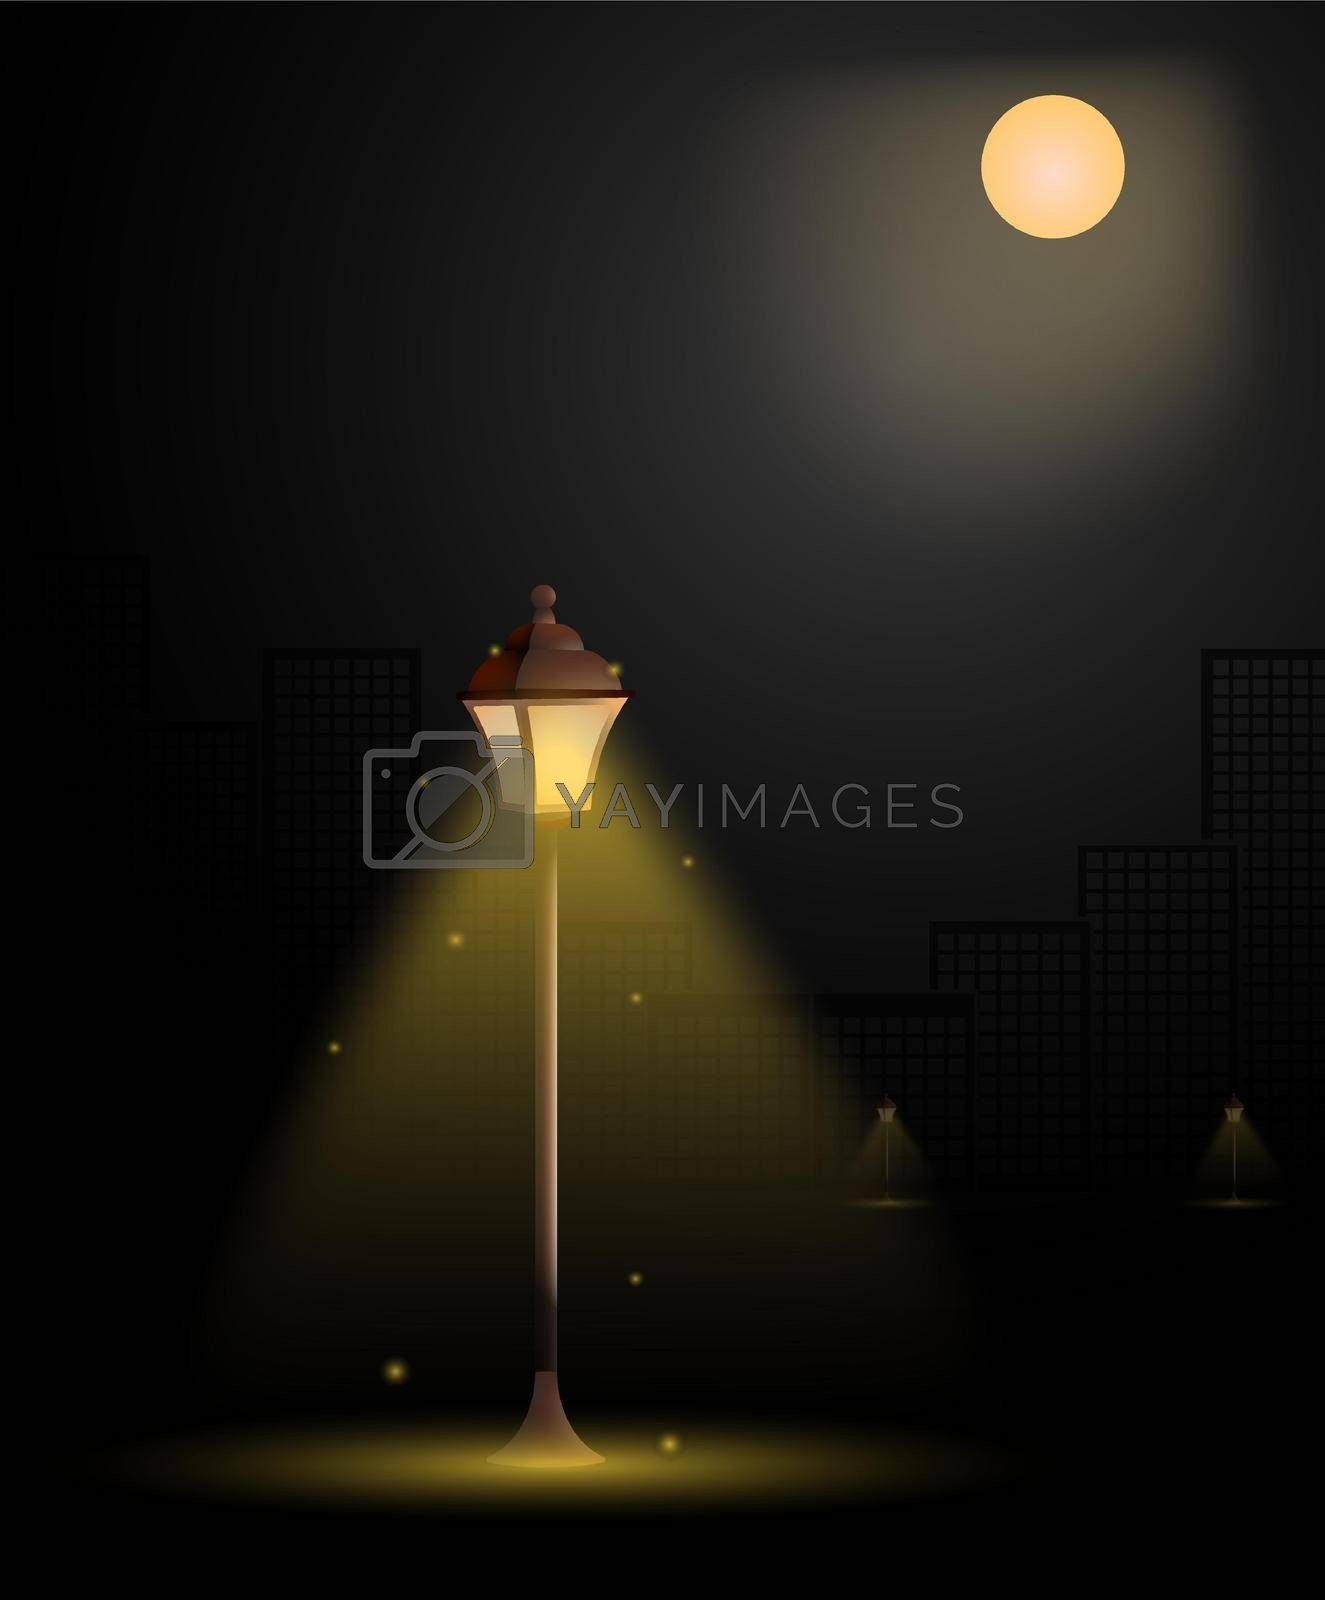 street light in big city. Vintage style. Night romance of metropolis. Bright full moon in sky. Street lighting at night. Realistic vector illustration